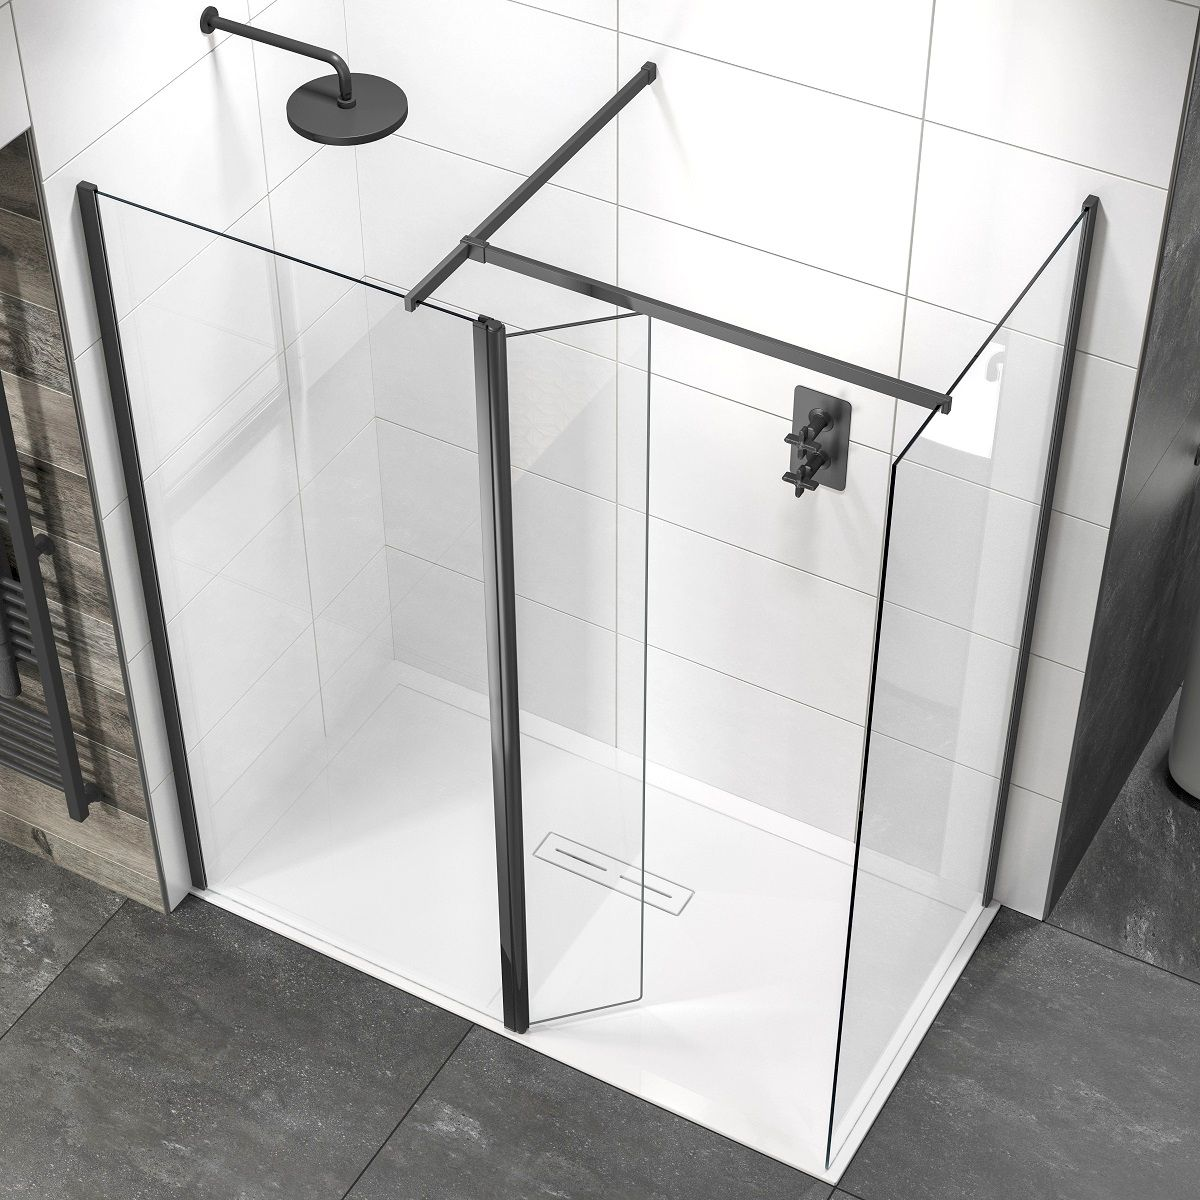 SOWBK14+SOWBK01+SOWBK40 Sommer Wet room Glass Panel - Black Black